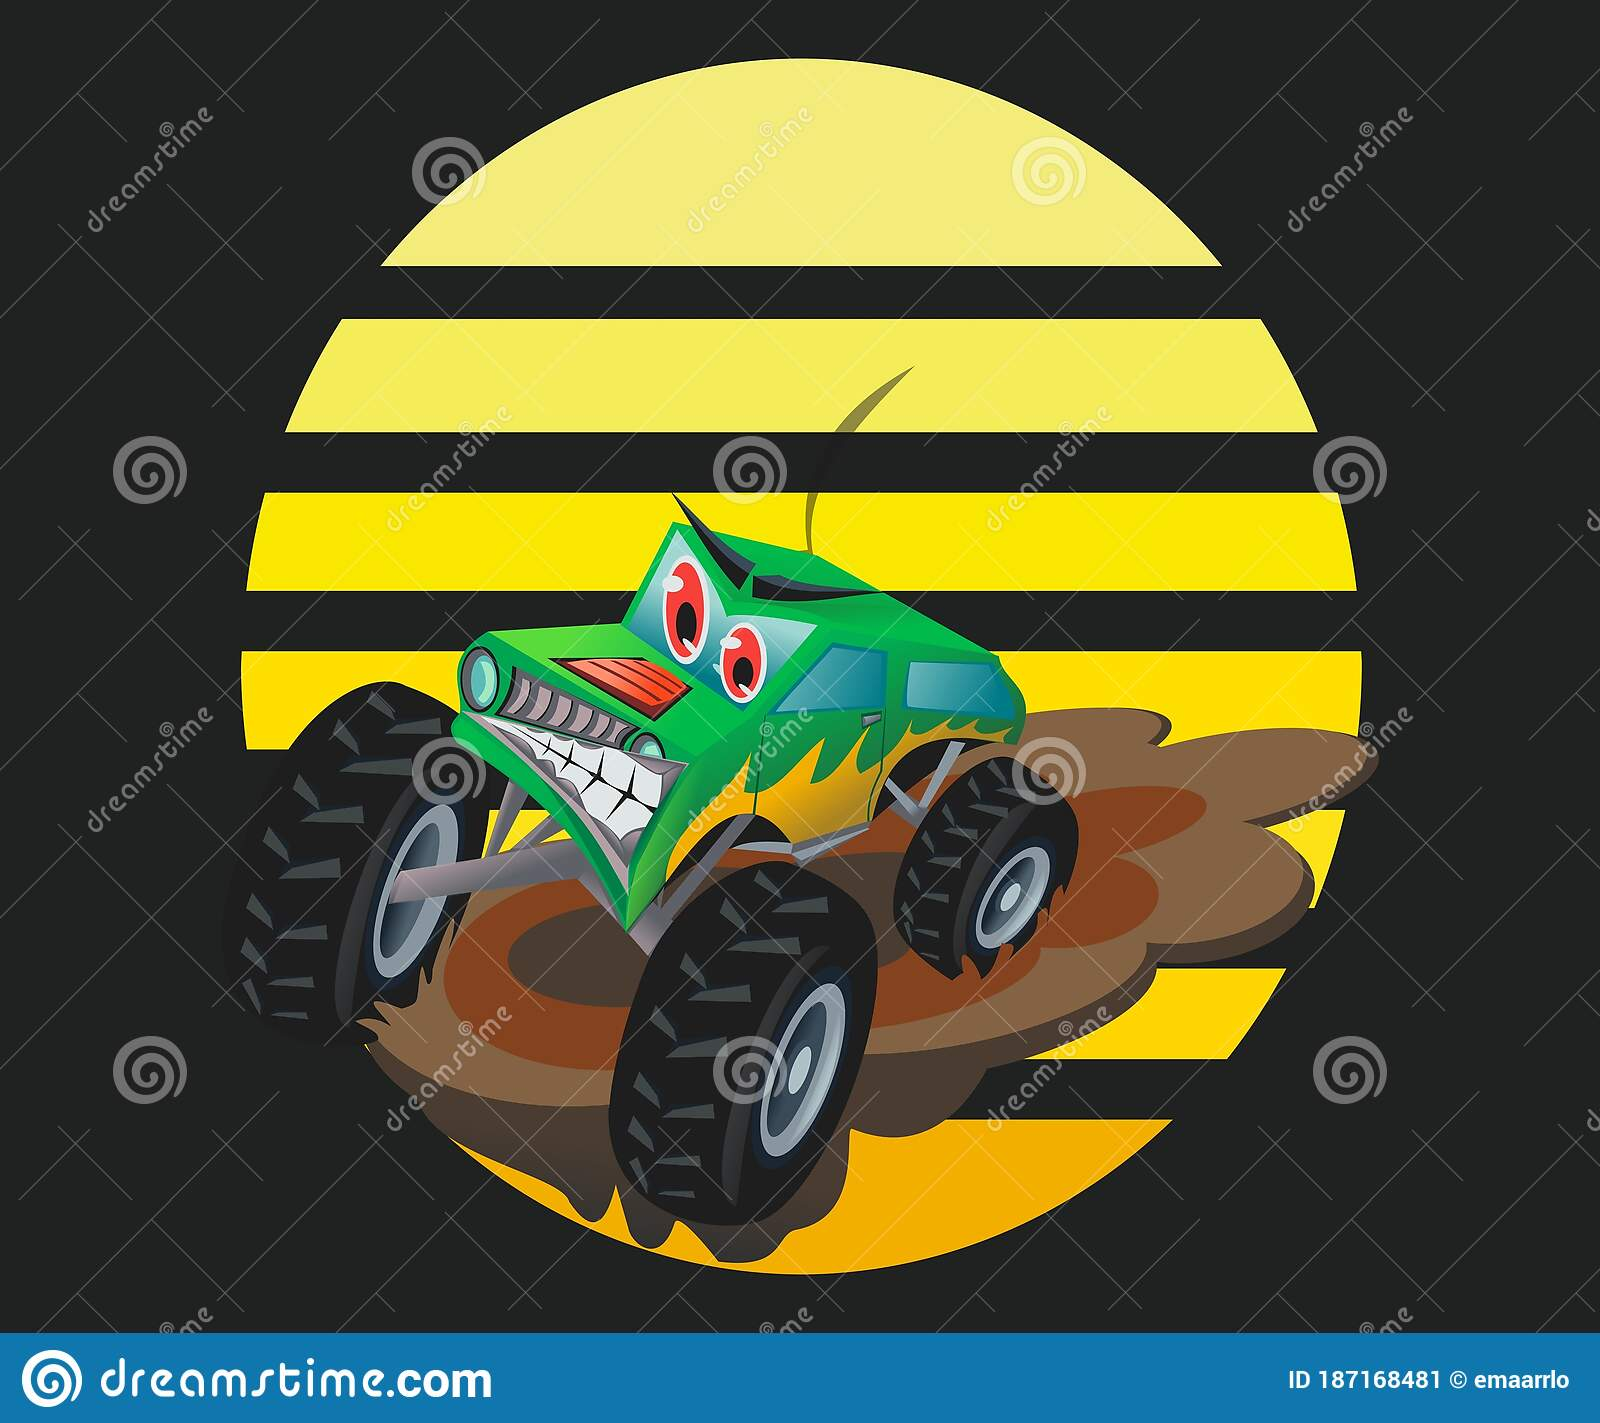 Cartoon Style Drawing Of A Monster Truck Black Background Version Stock Illustration Illustration Of Running Monster 187168481